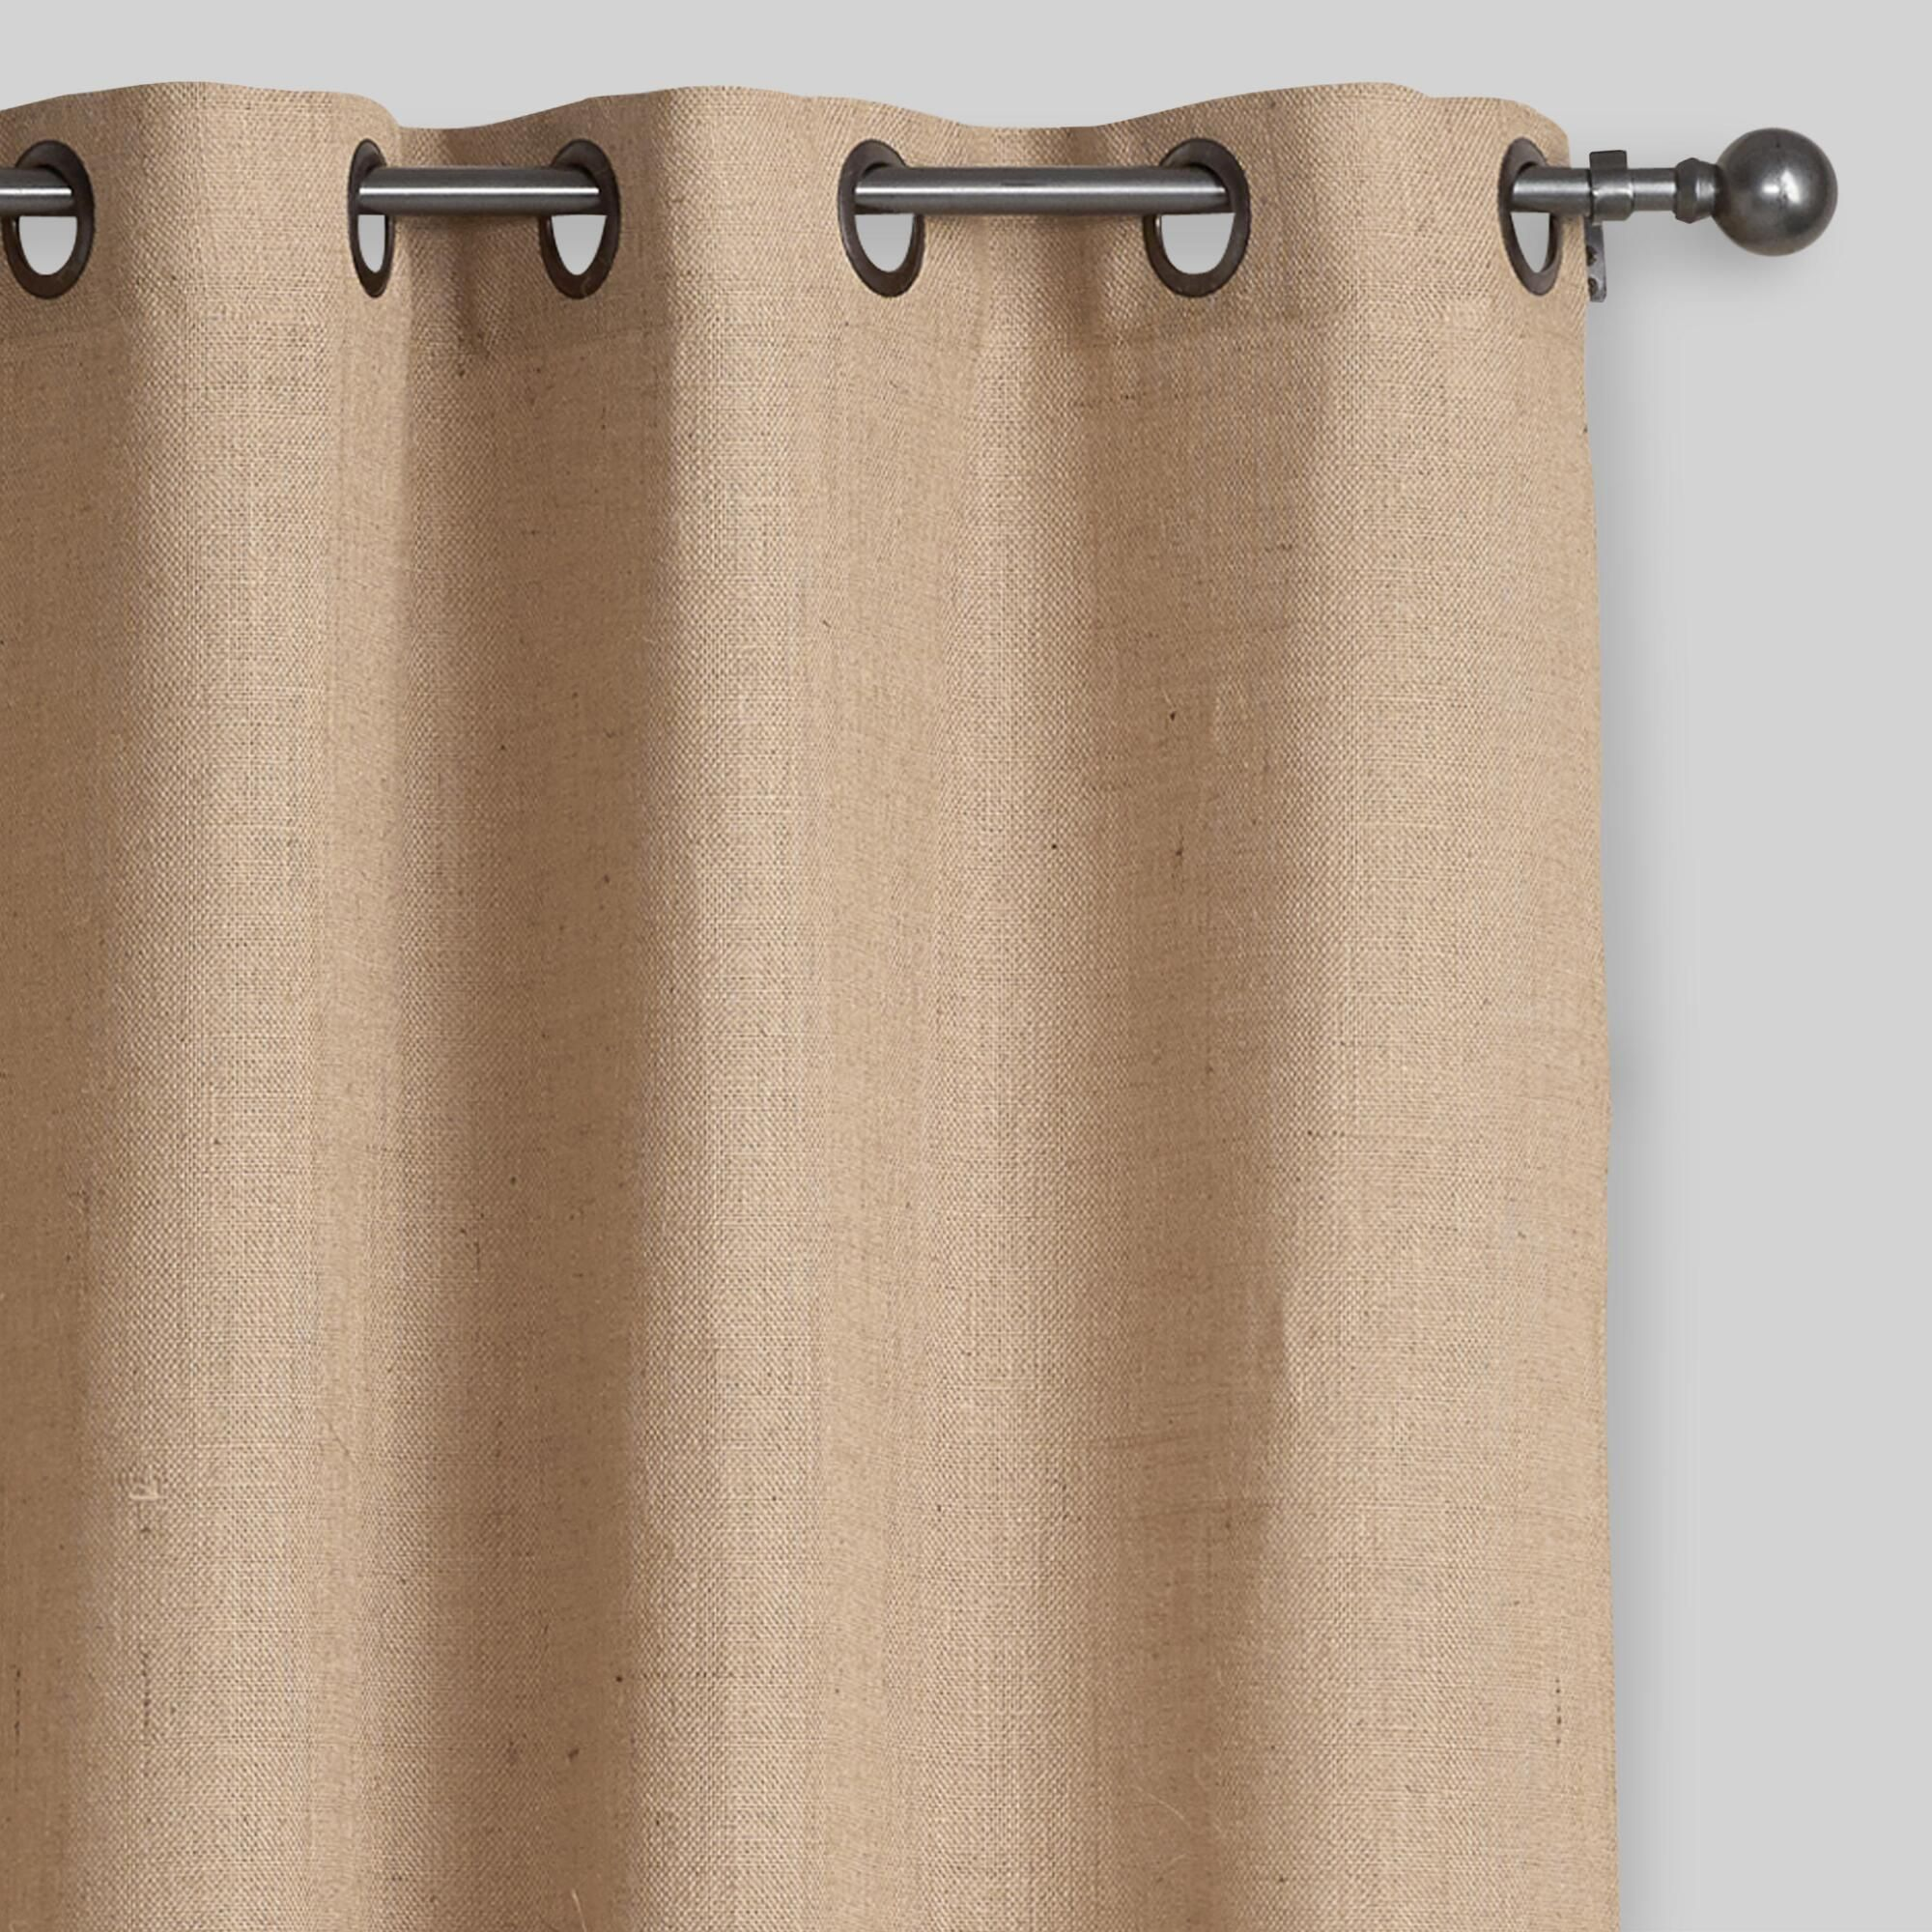 Our Hemp Burlap Grommet Top Curtains Bring A Rustic Look And